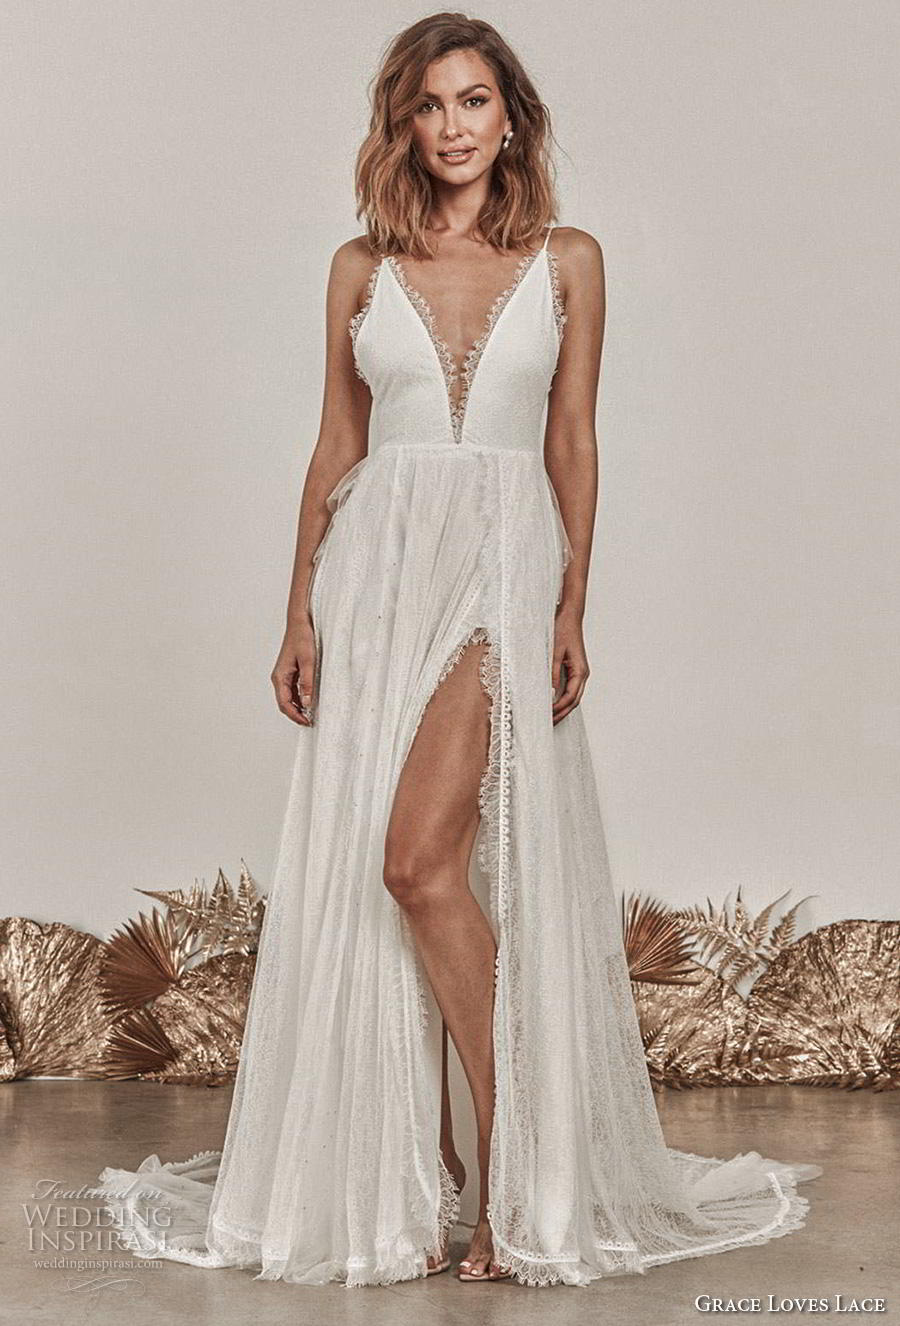 grace love lace 2020 bridal sleeveless spaghetti strap deep v neck full embellishment slit skirt romantic sexy soft a  line wedding dress backless chapel train (12) mv